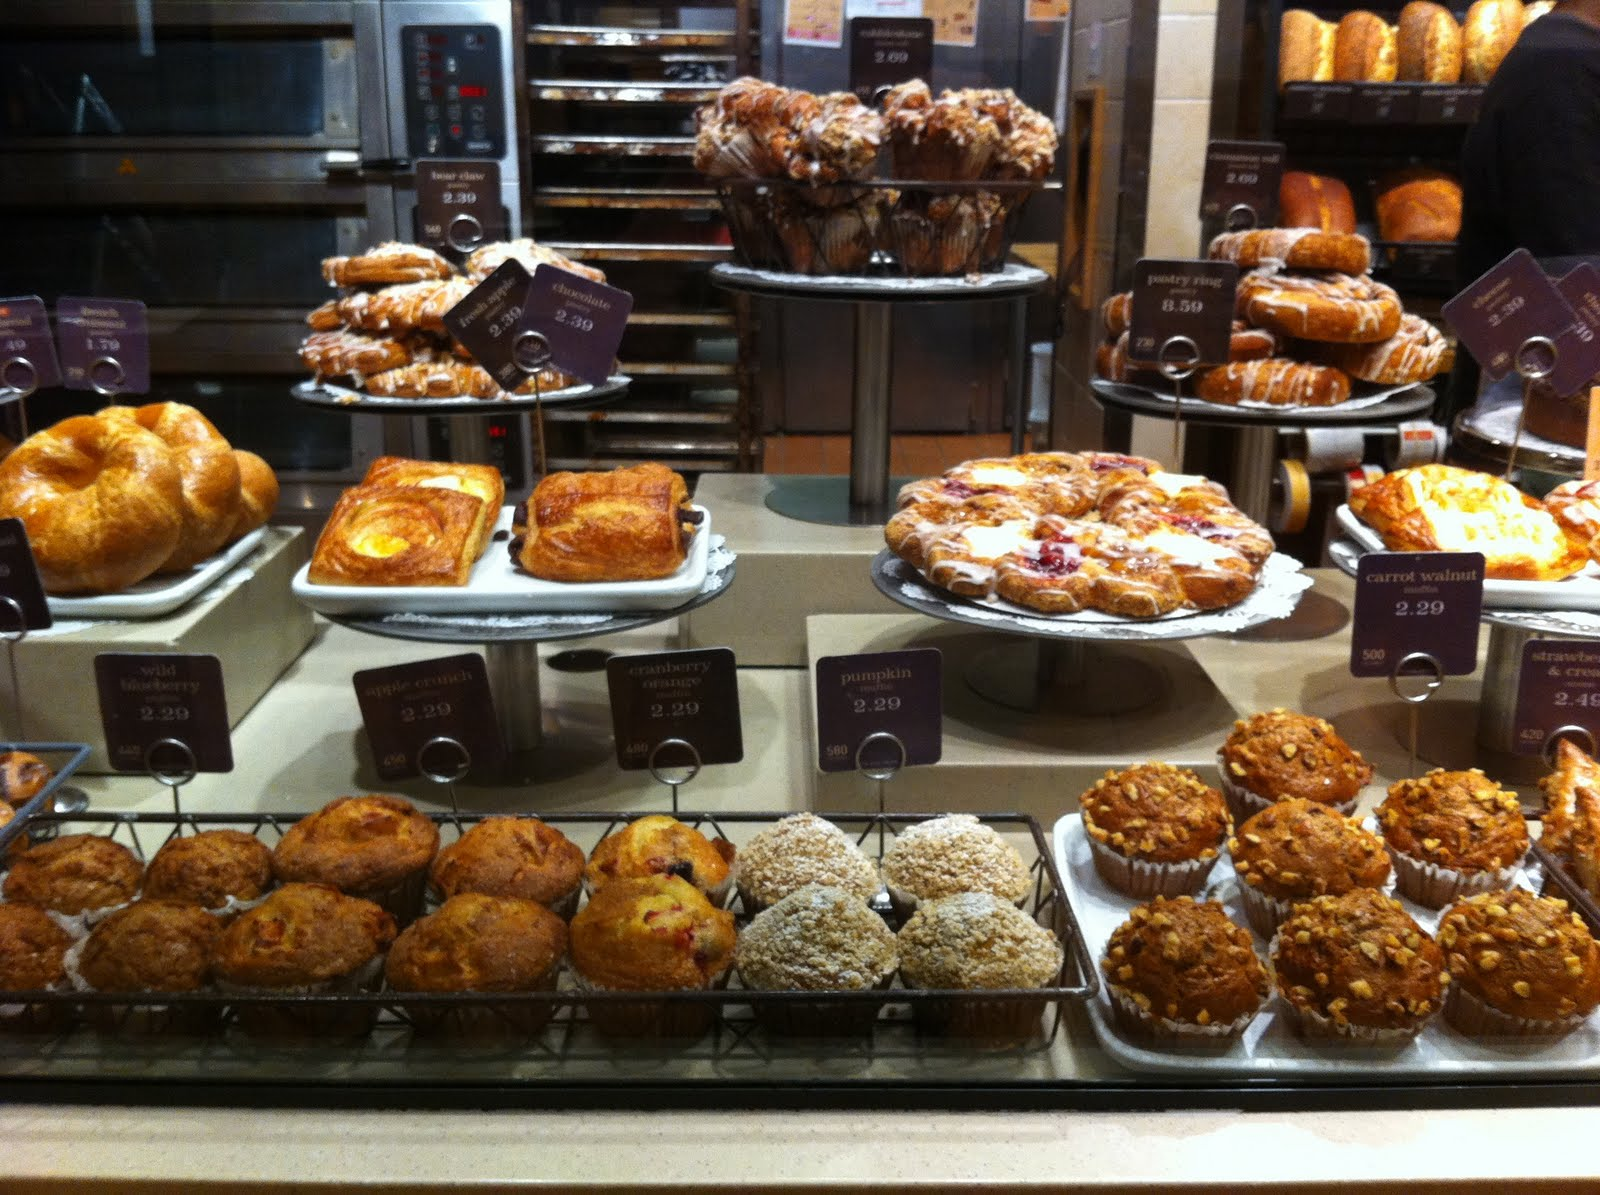 Browse all Panera Bread locations in Santa Maria to find soup, salad, bakery, pastries, coffee near you. Dine-in, pickup, and delivery.